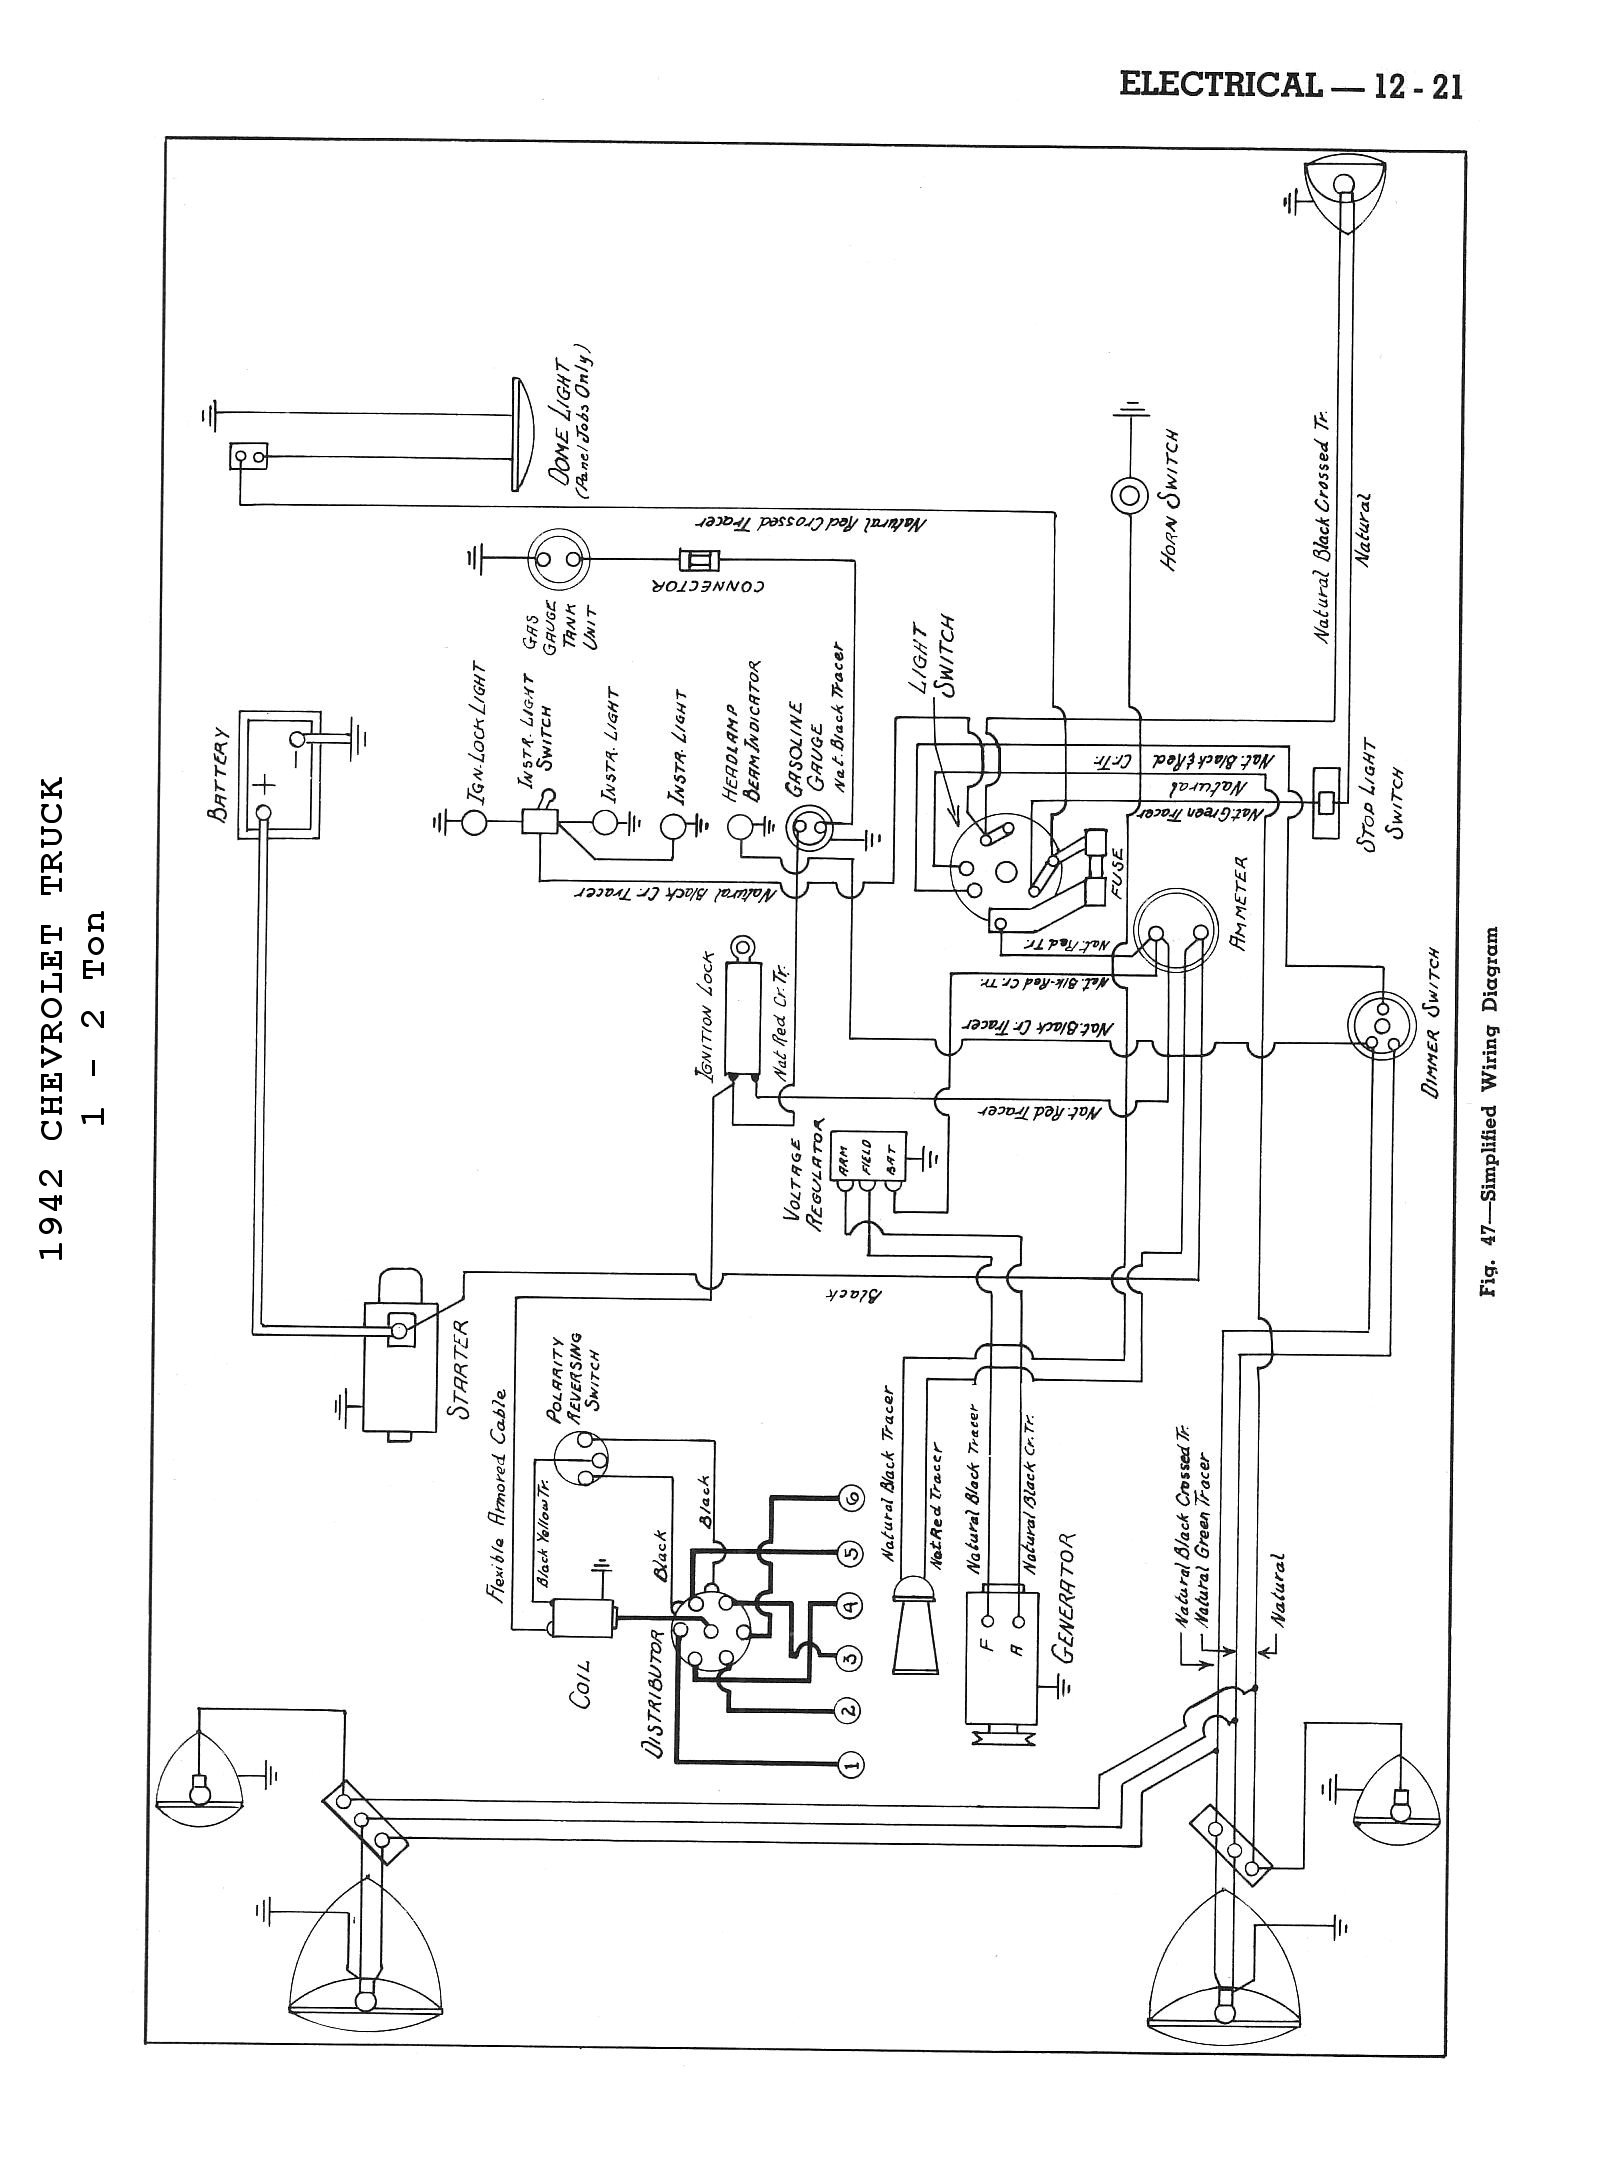 42cm4x2t1221 cm wiring diagram cm hoist wiring diagram \u2022 wiring diagrams j boston subsat 6 wiring diagram at reclaimingppi.co